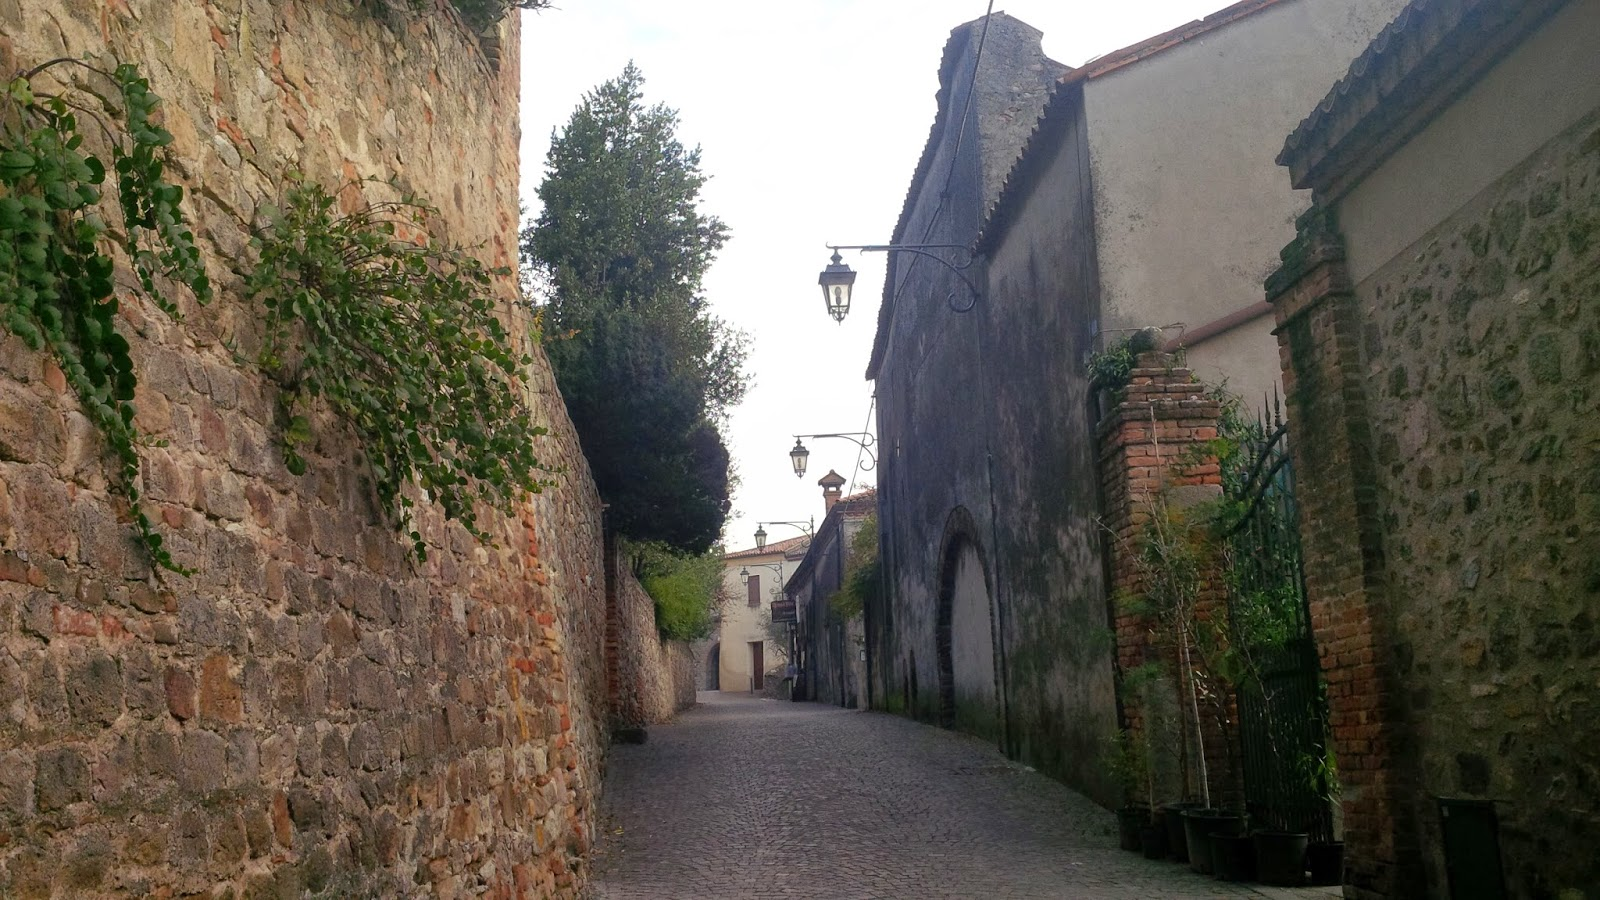 The street leading to Petrarch's house in Arqua Petrarca